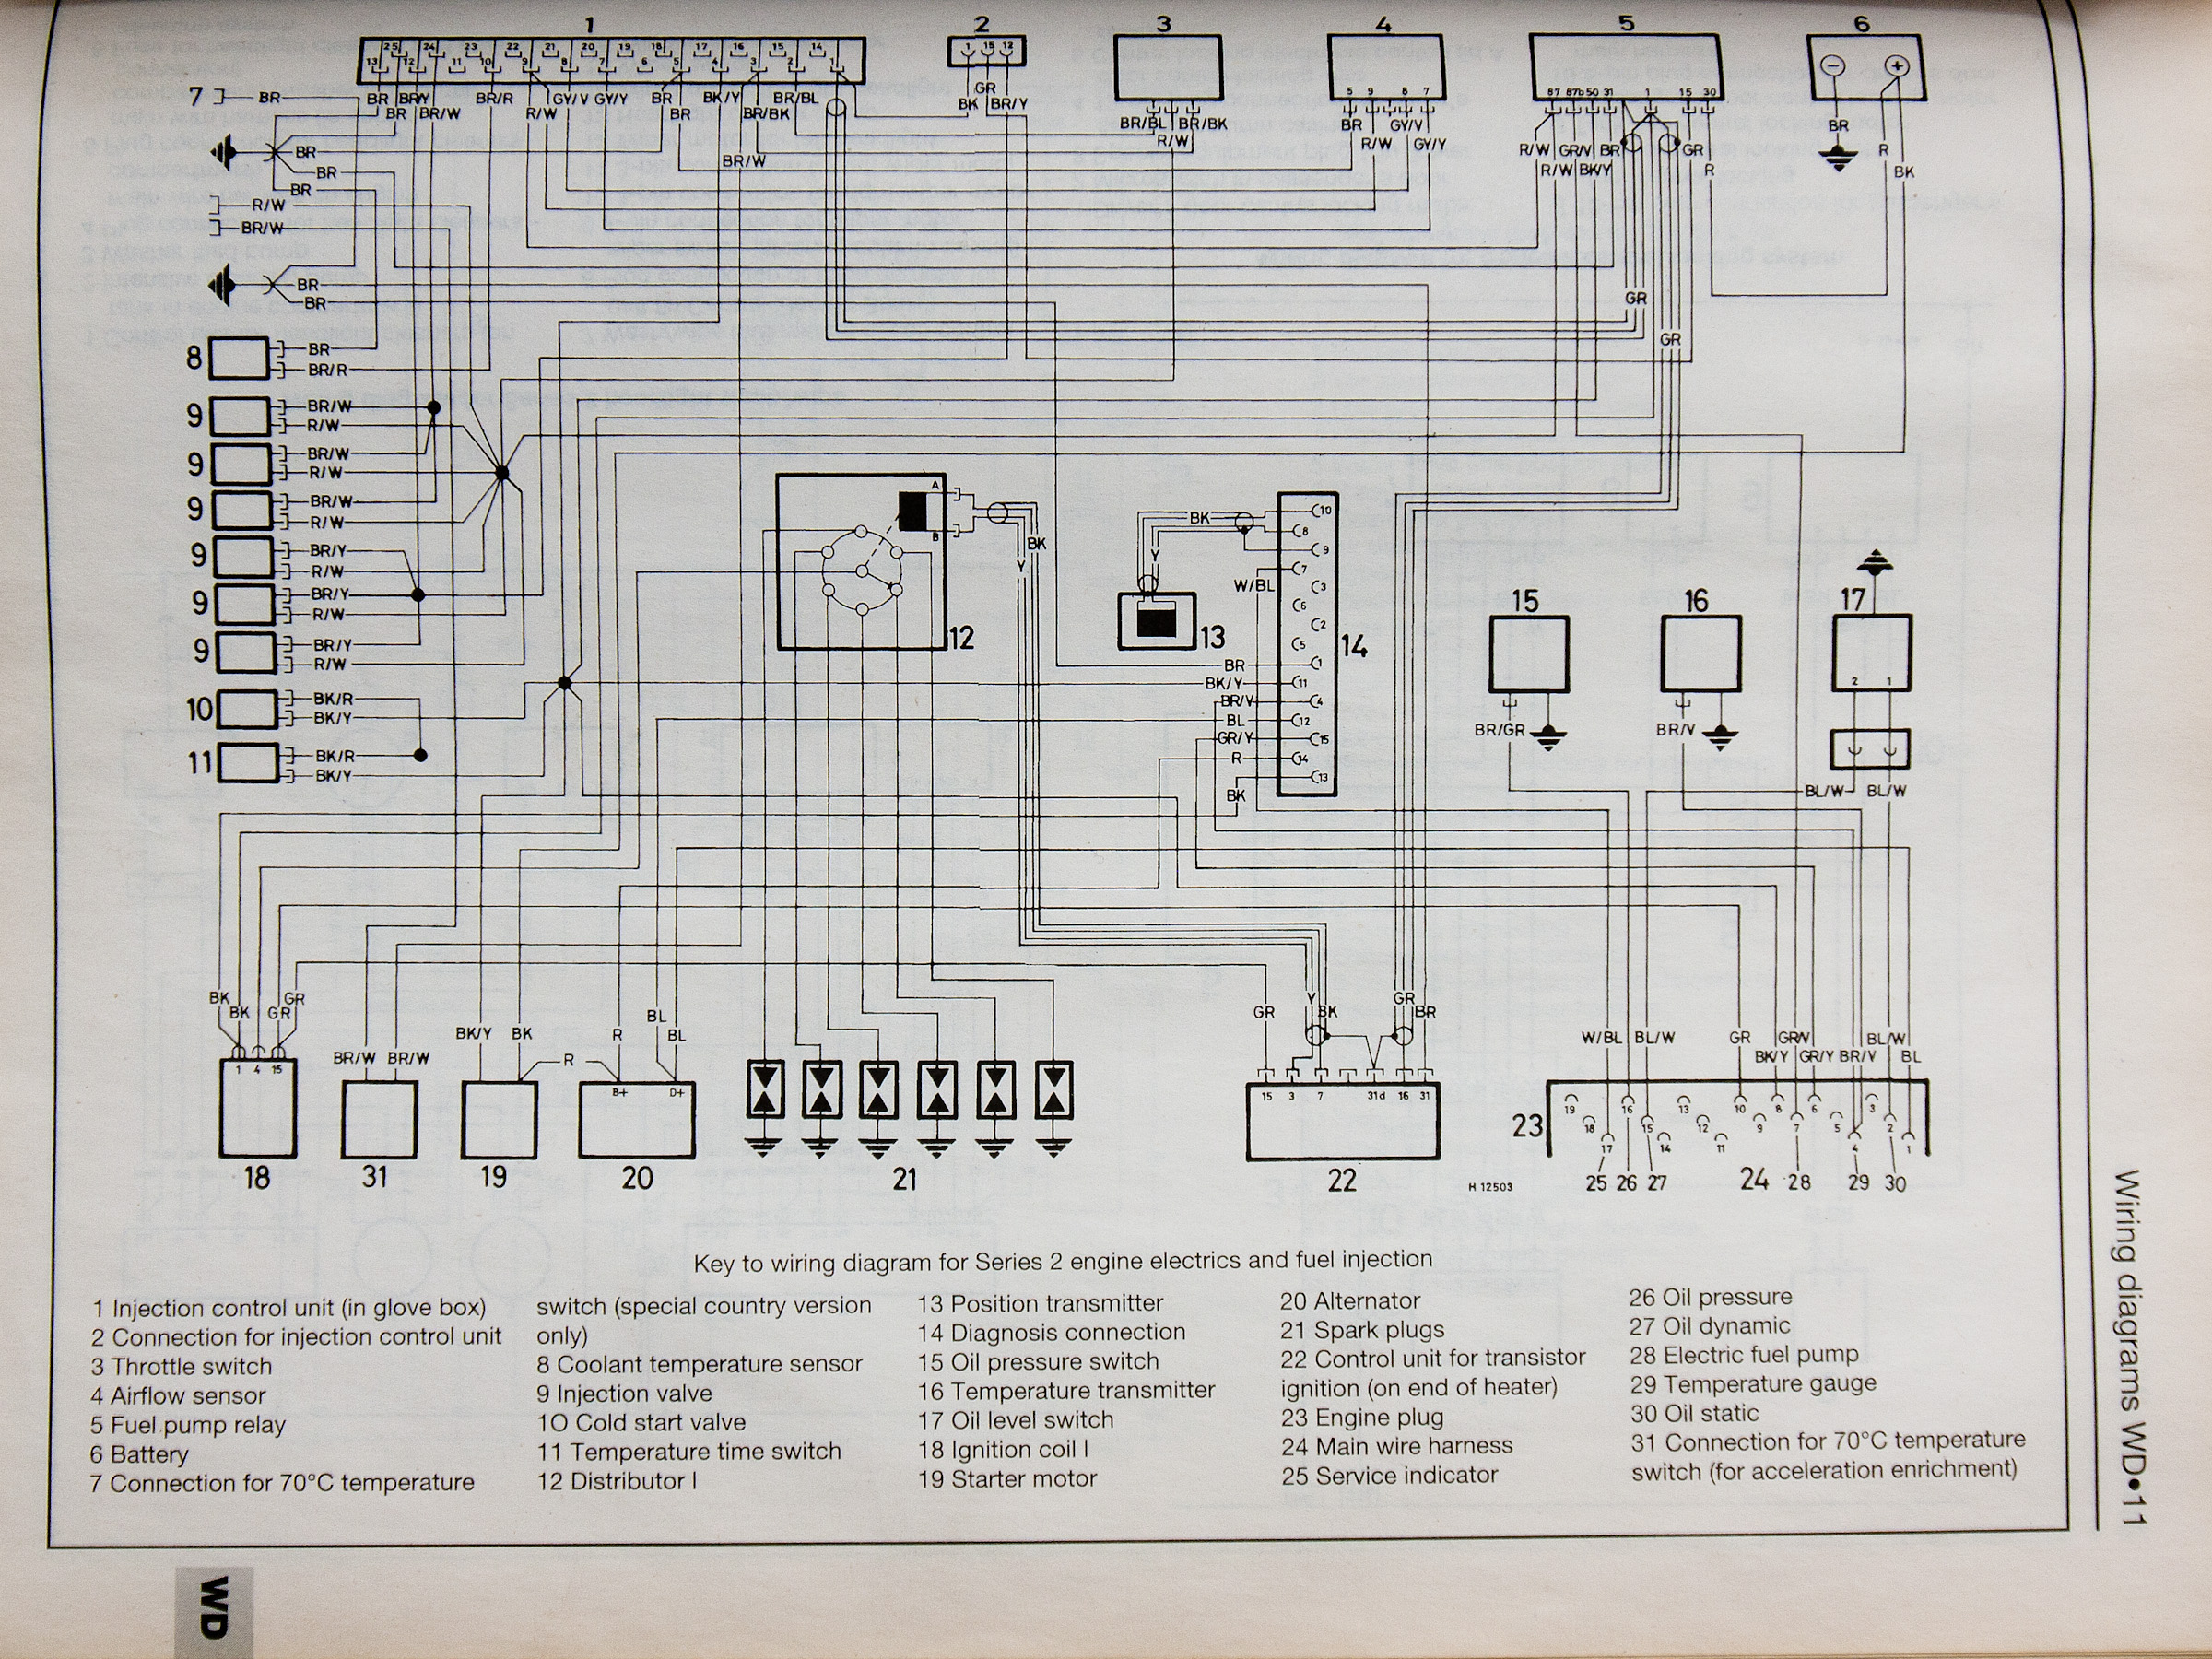 e30_ljetronic_001 e30_ljetronic_001 jpg e30 ignition wiring diagram at highcare.asia